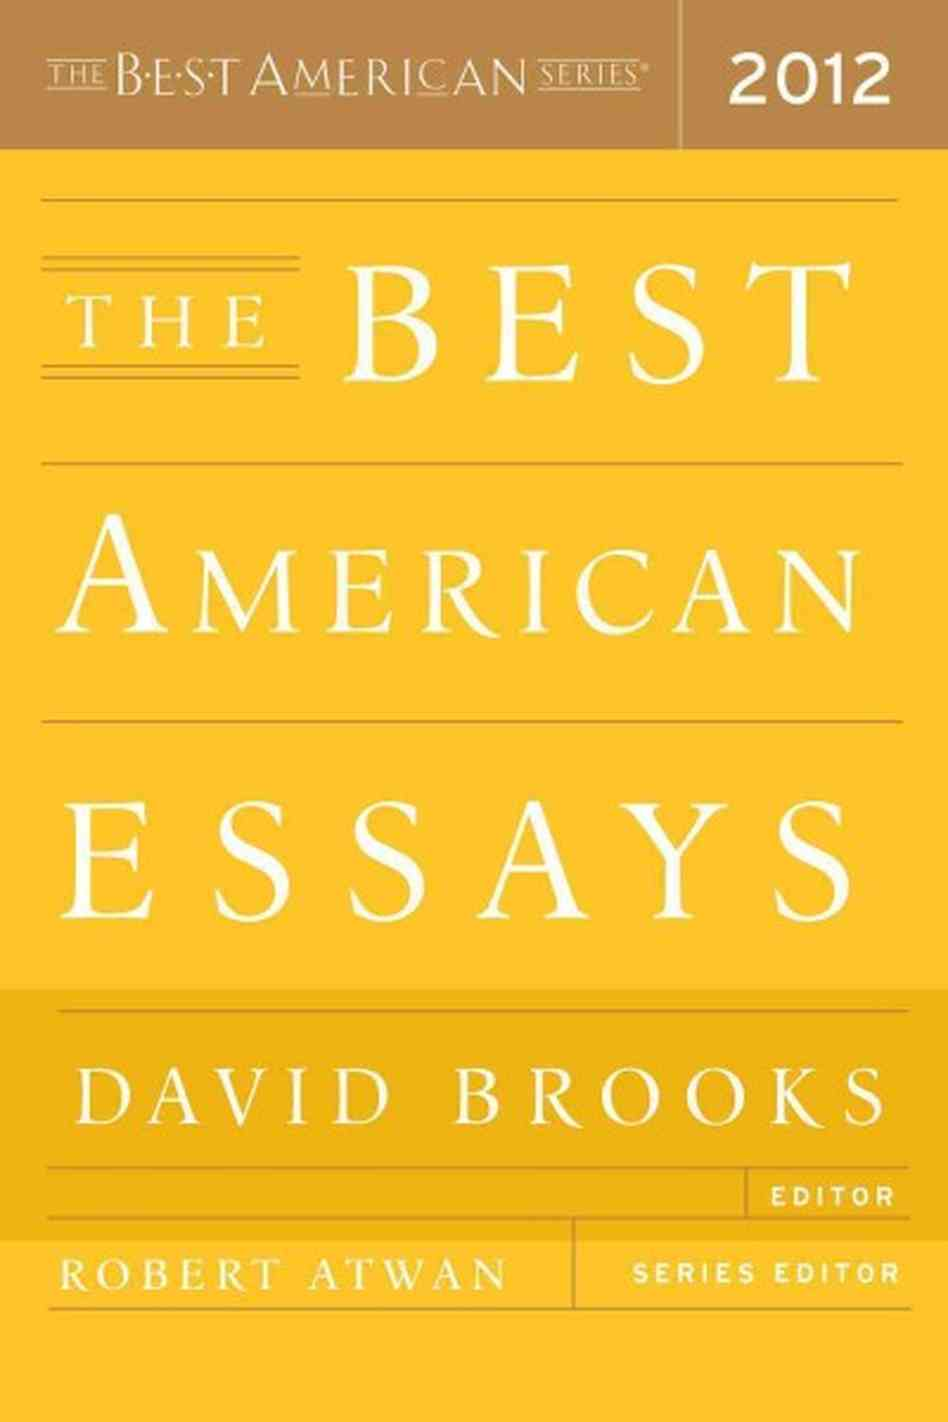 007 Best American Essays 2012 Essay Astounding 2017 Submissions Pdf Free Download Full